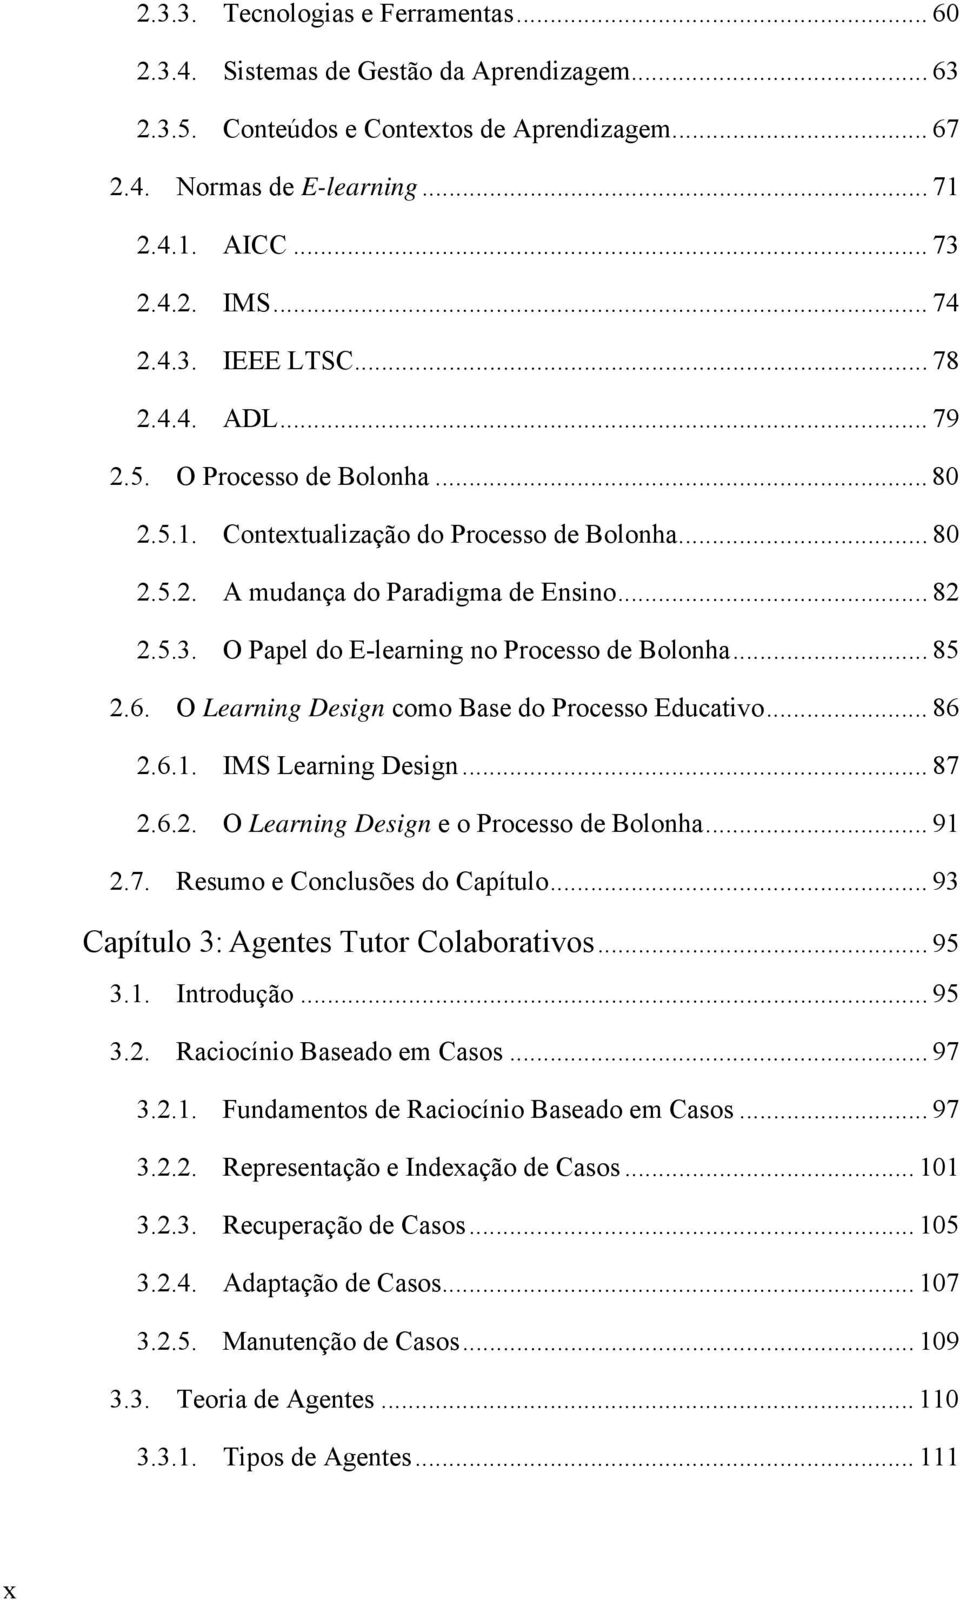 .. 85 2.6. O Learning Design como Base do Processo Educativo... 86 2.6.1. IMS Learning Design... 87 2.6.2. O Learning Design e o Processo de Bolonha... 91 2.7. Resumo e Conclusões do Capítulo.